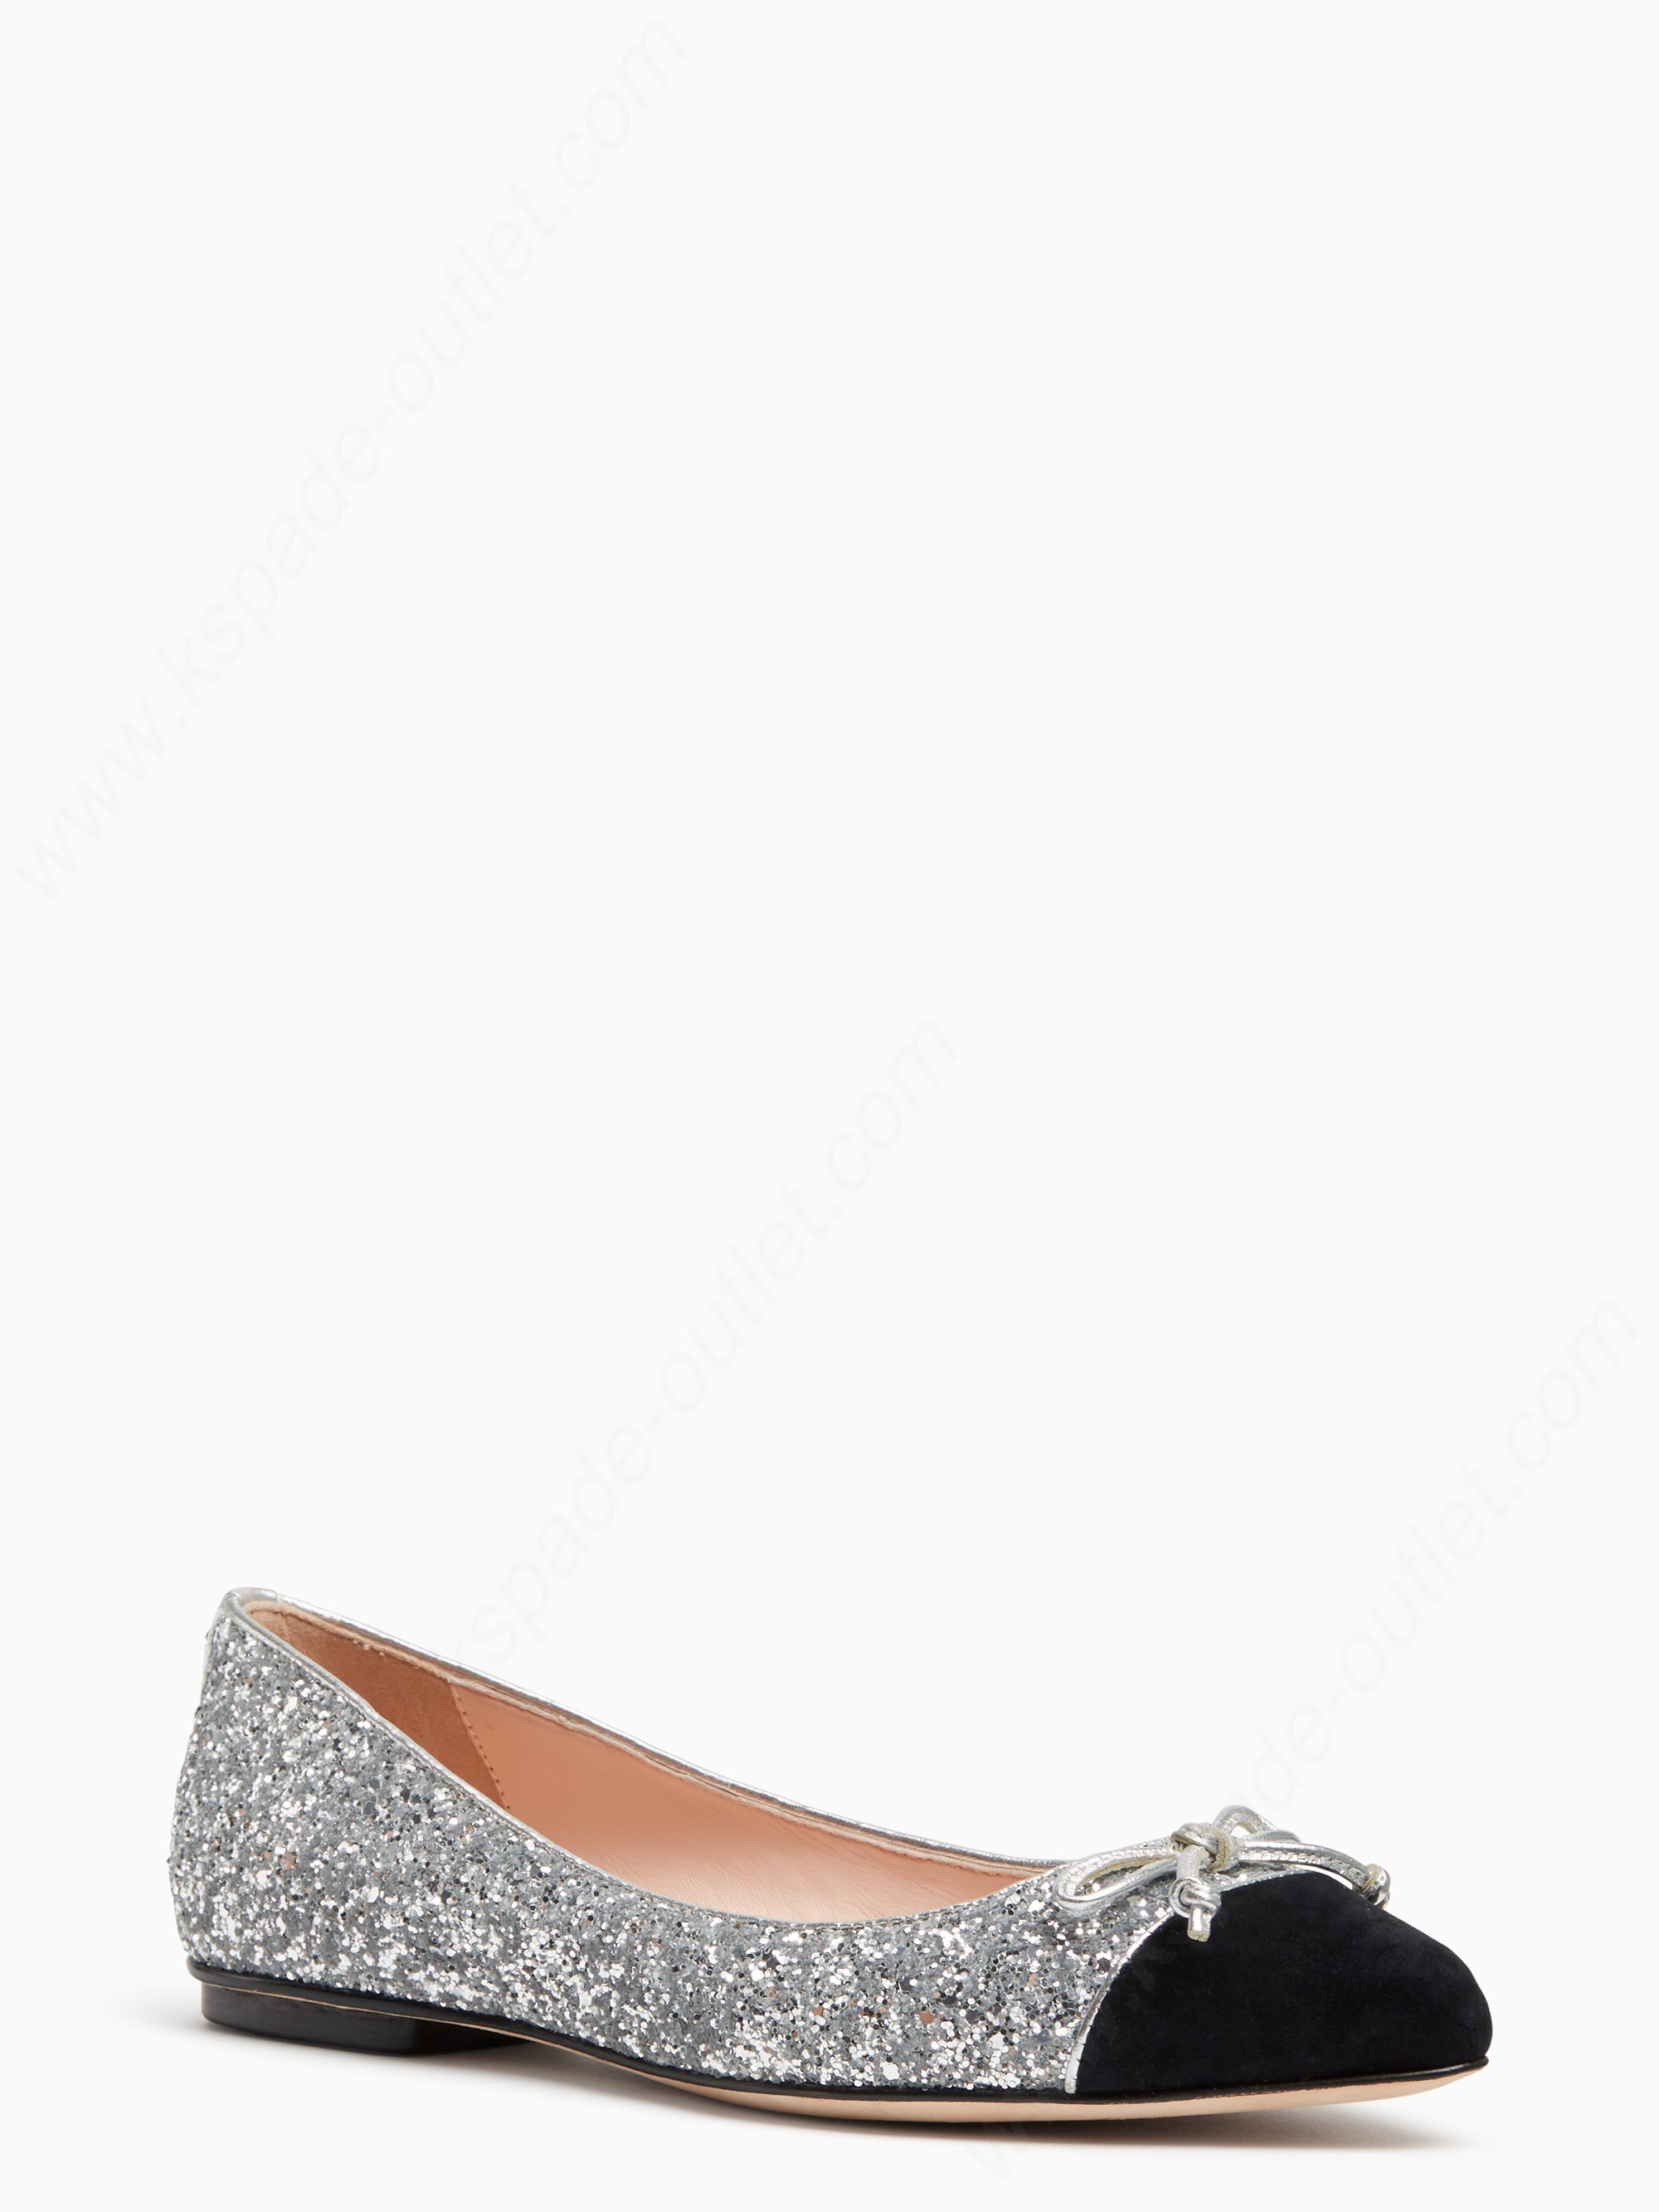 Kate Spade Lady Trainers Nella Flats - Kate Spade Lady Trainers Nella Flats